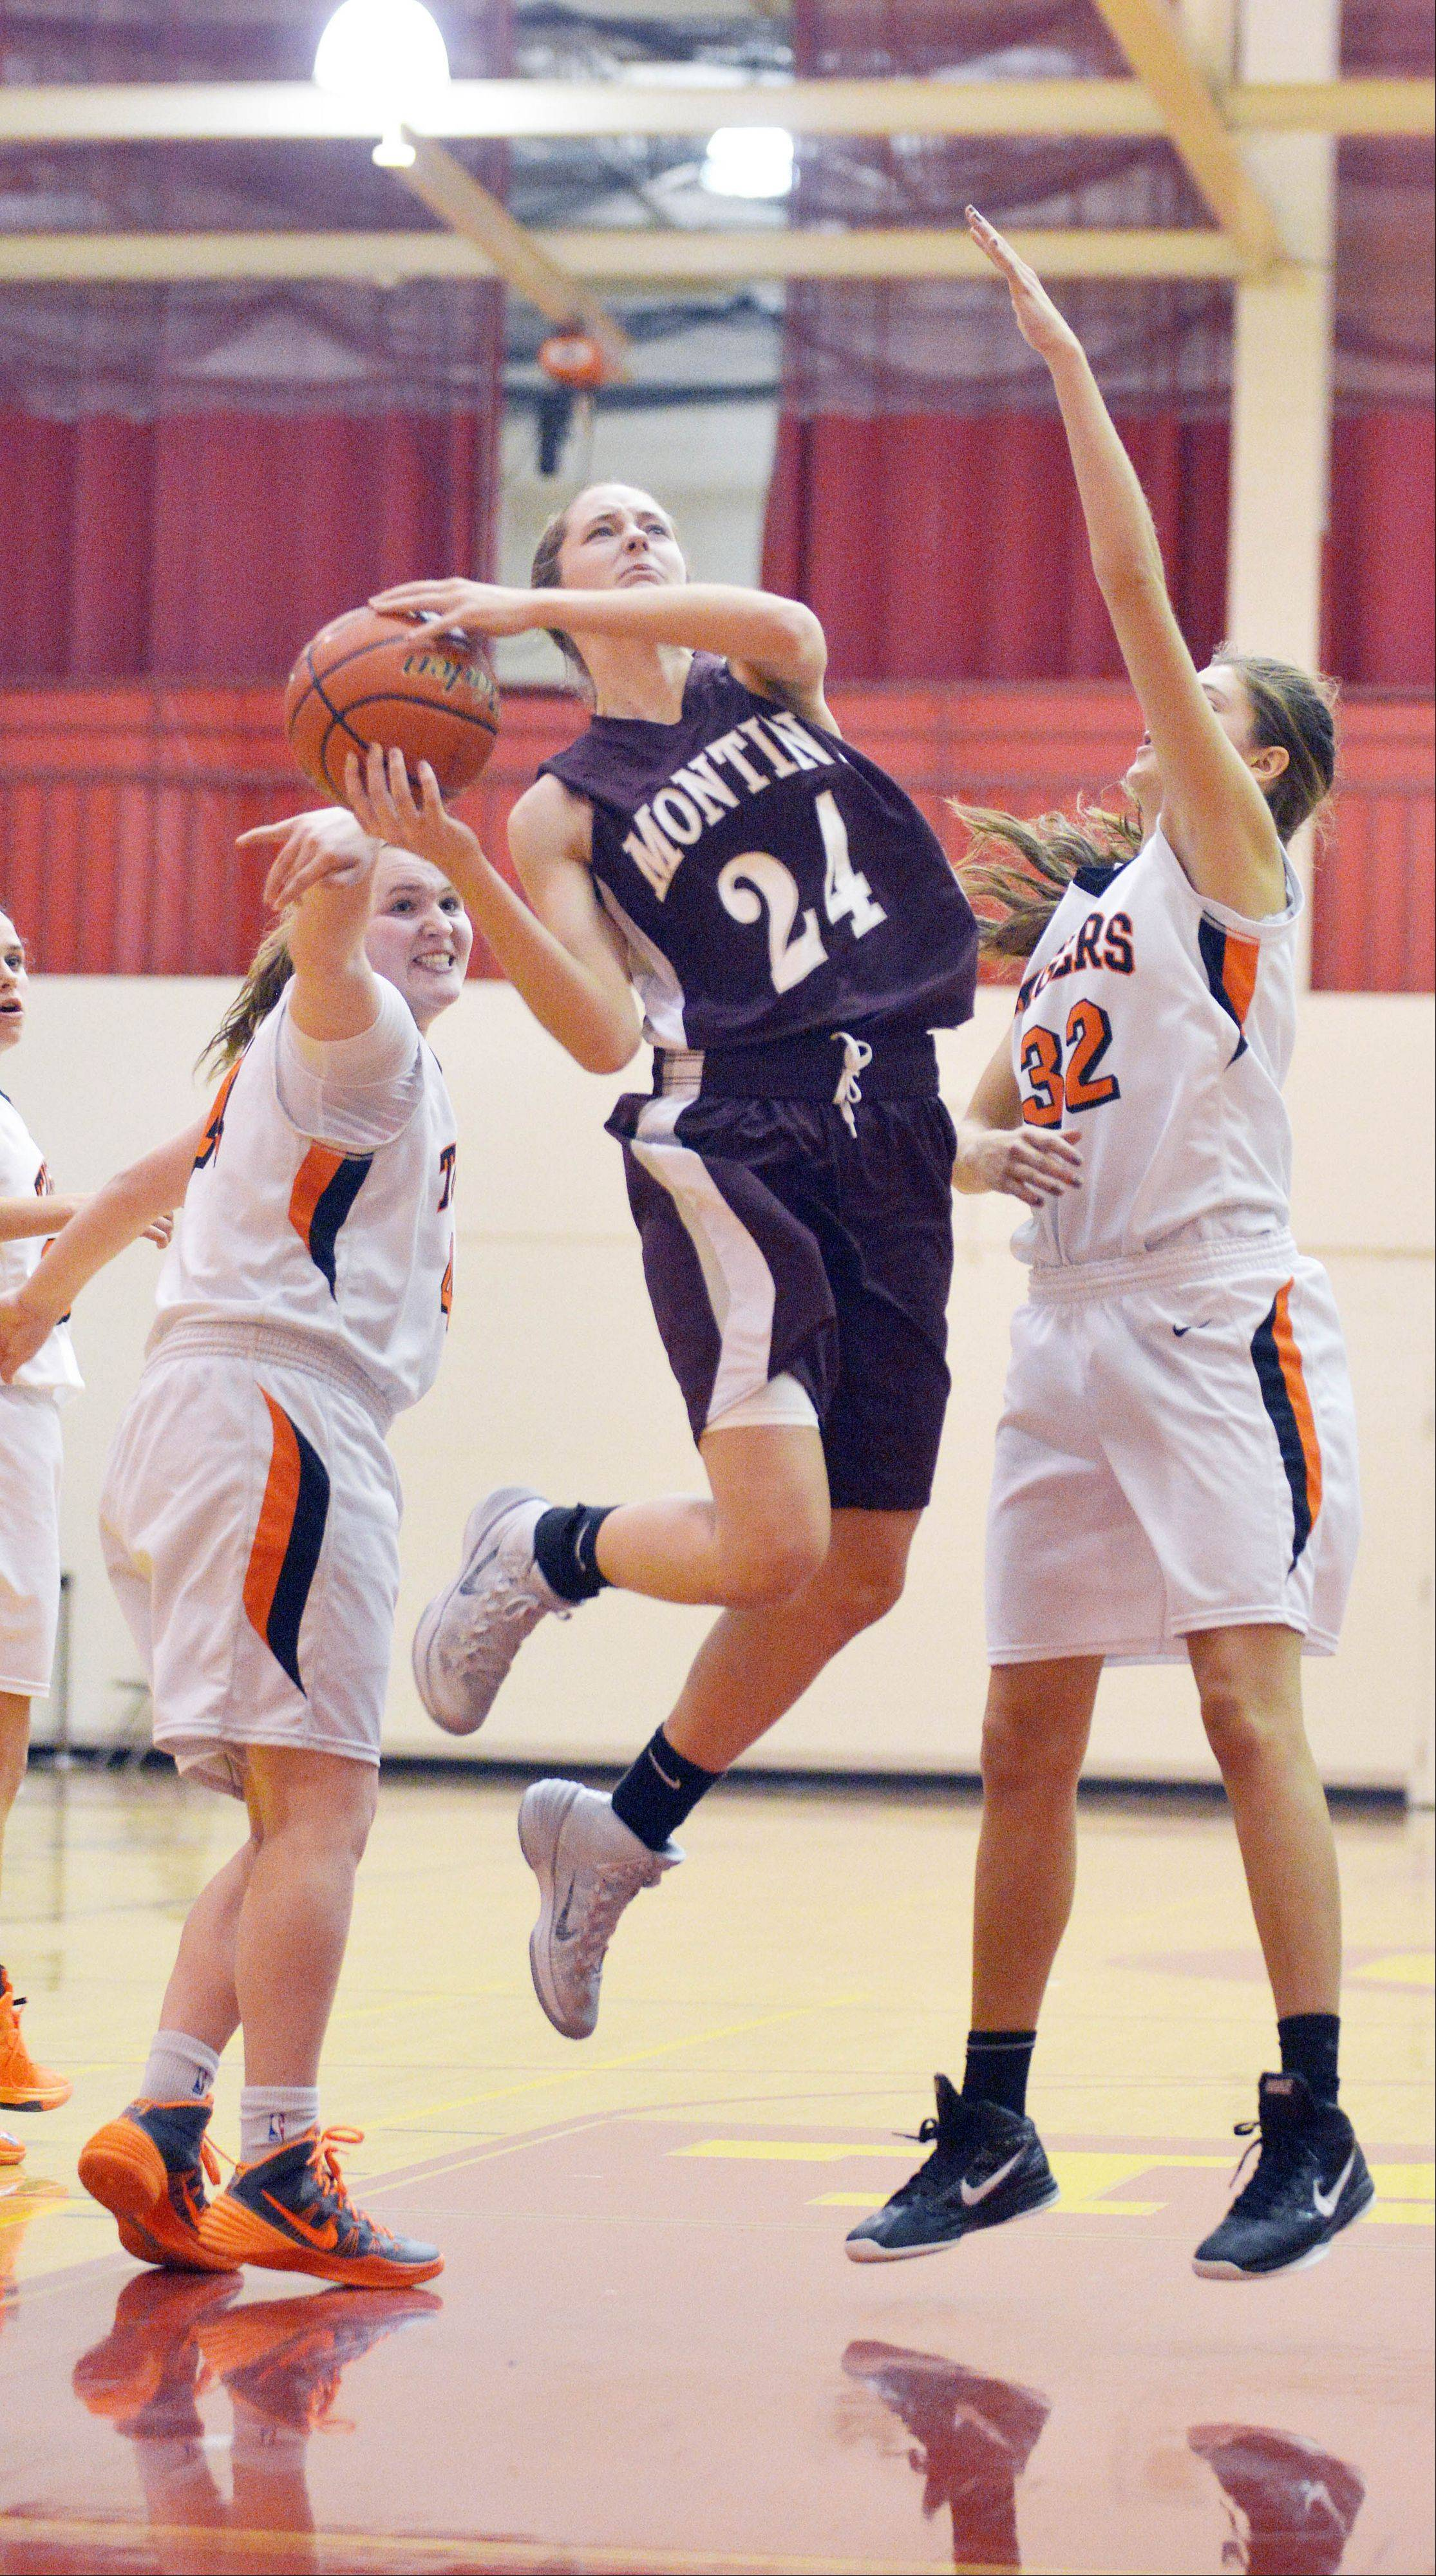 Kateri Stone of Montini,center, takes one to the net during the Wheaton Warrenville South vs. Montini girls basketball game at the Schaumburg tournament Friday. Olivia Linebarger,left, and Erin Zappia were attempting to block the shot.